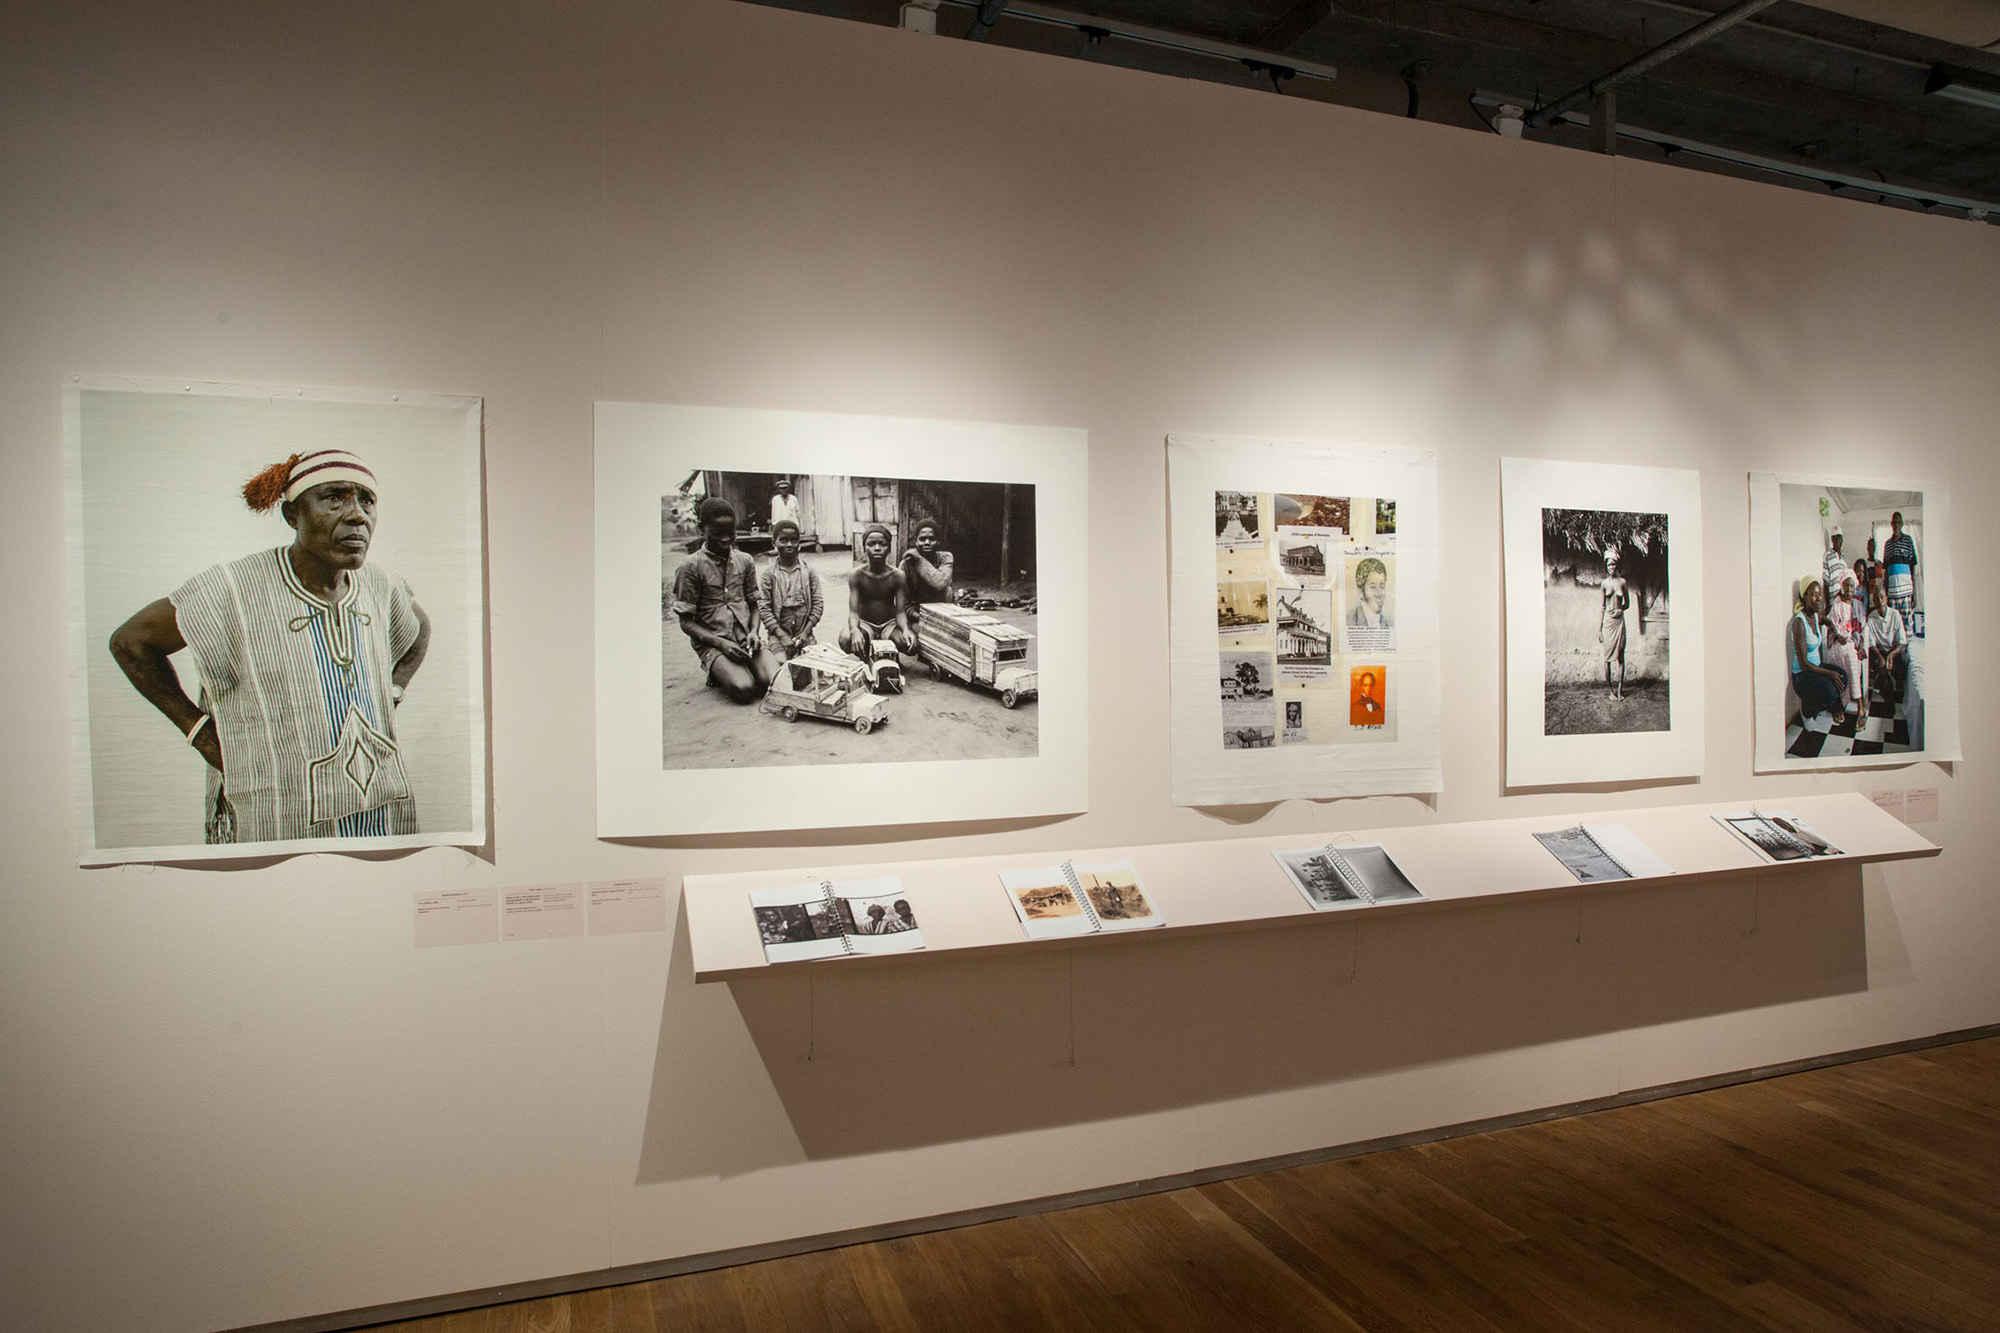 A wall devoted to Liberia at the group exhibition 'The Mix' in the Nederlands Fotomuseum in Rotterdam, 2018